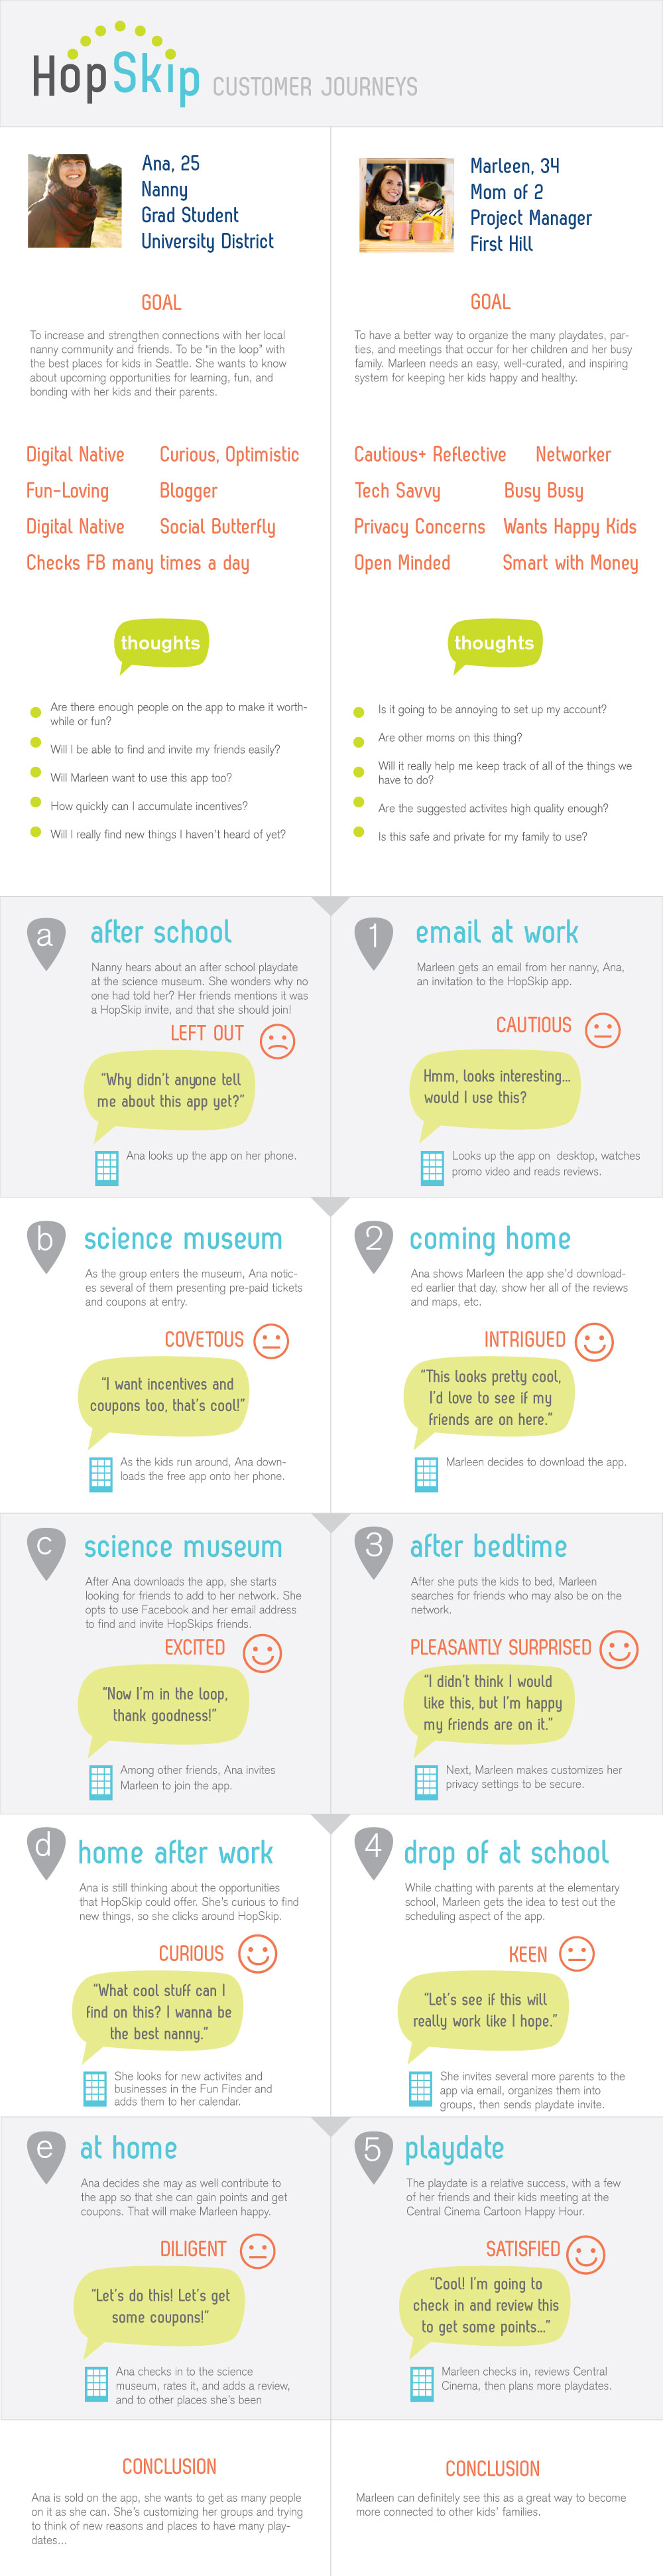 hopskip-customer-journeys.jpg (1000×3883)